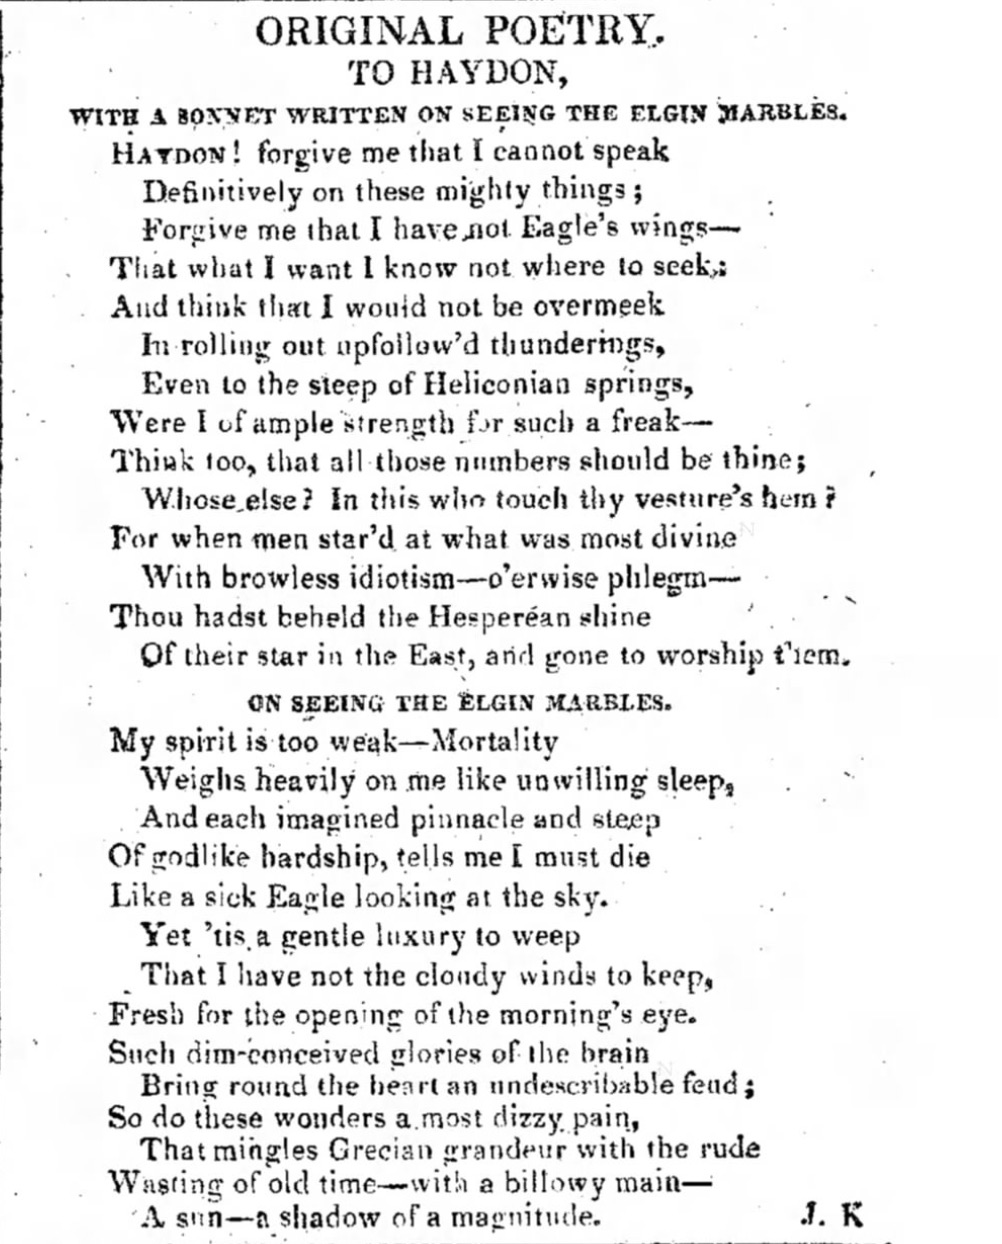 Publication of Keats's Elgin Marble poems in The Examiner, 9 March 1817, p.155.